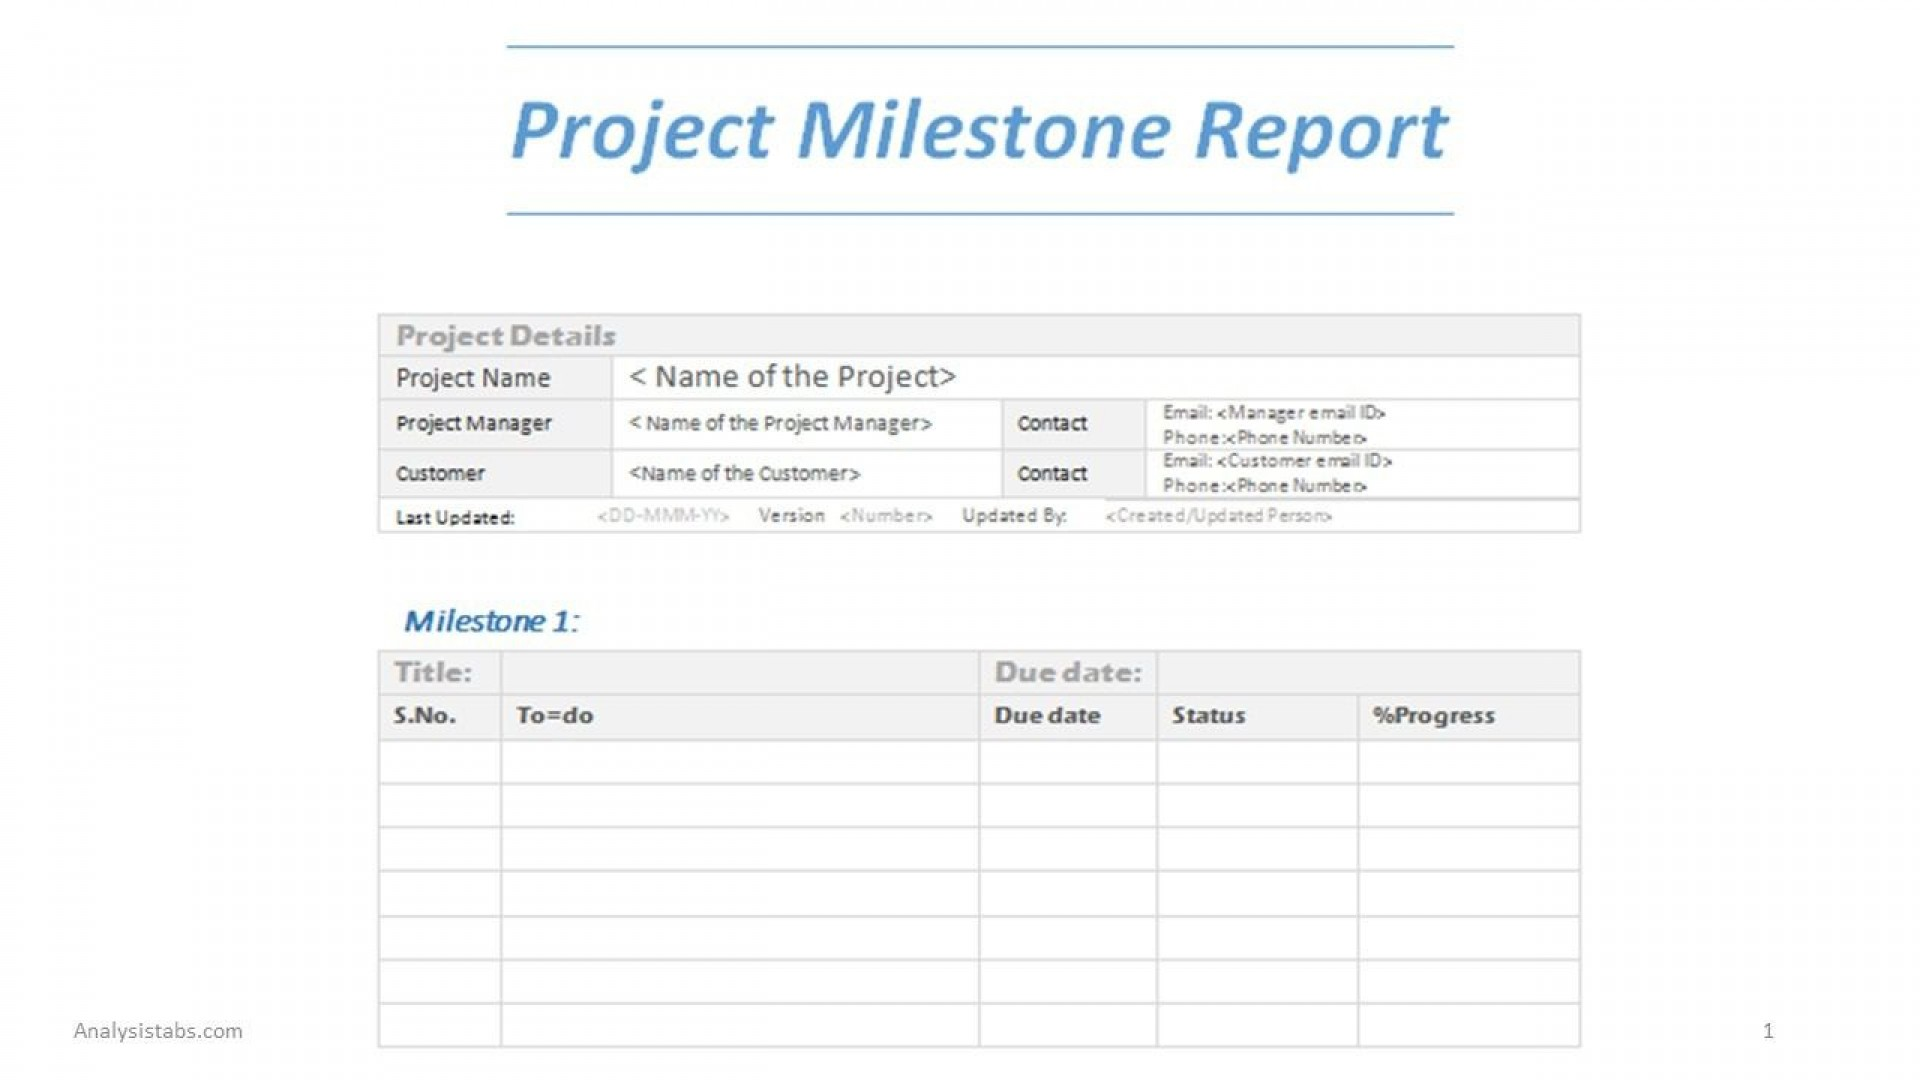 006 Awful Project Management Report Template Word High Definition  Free Statu1920